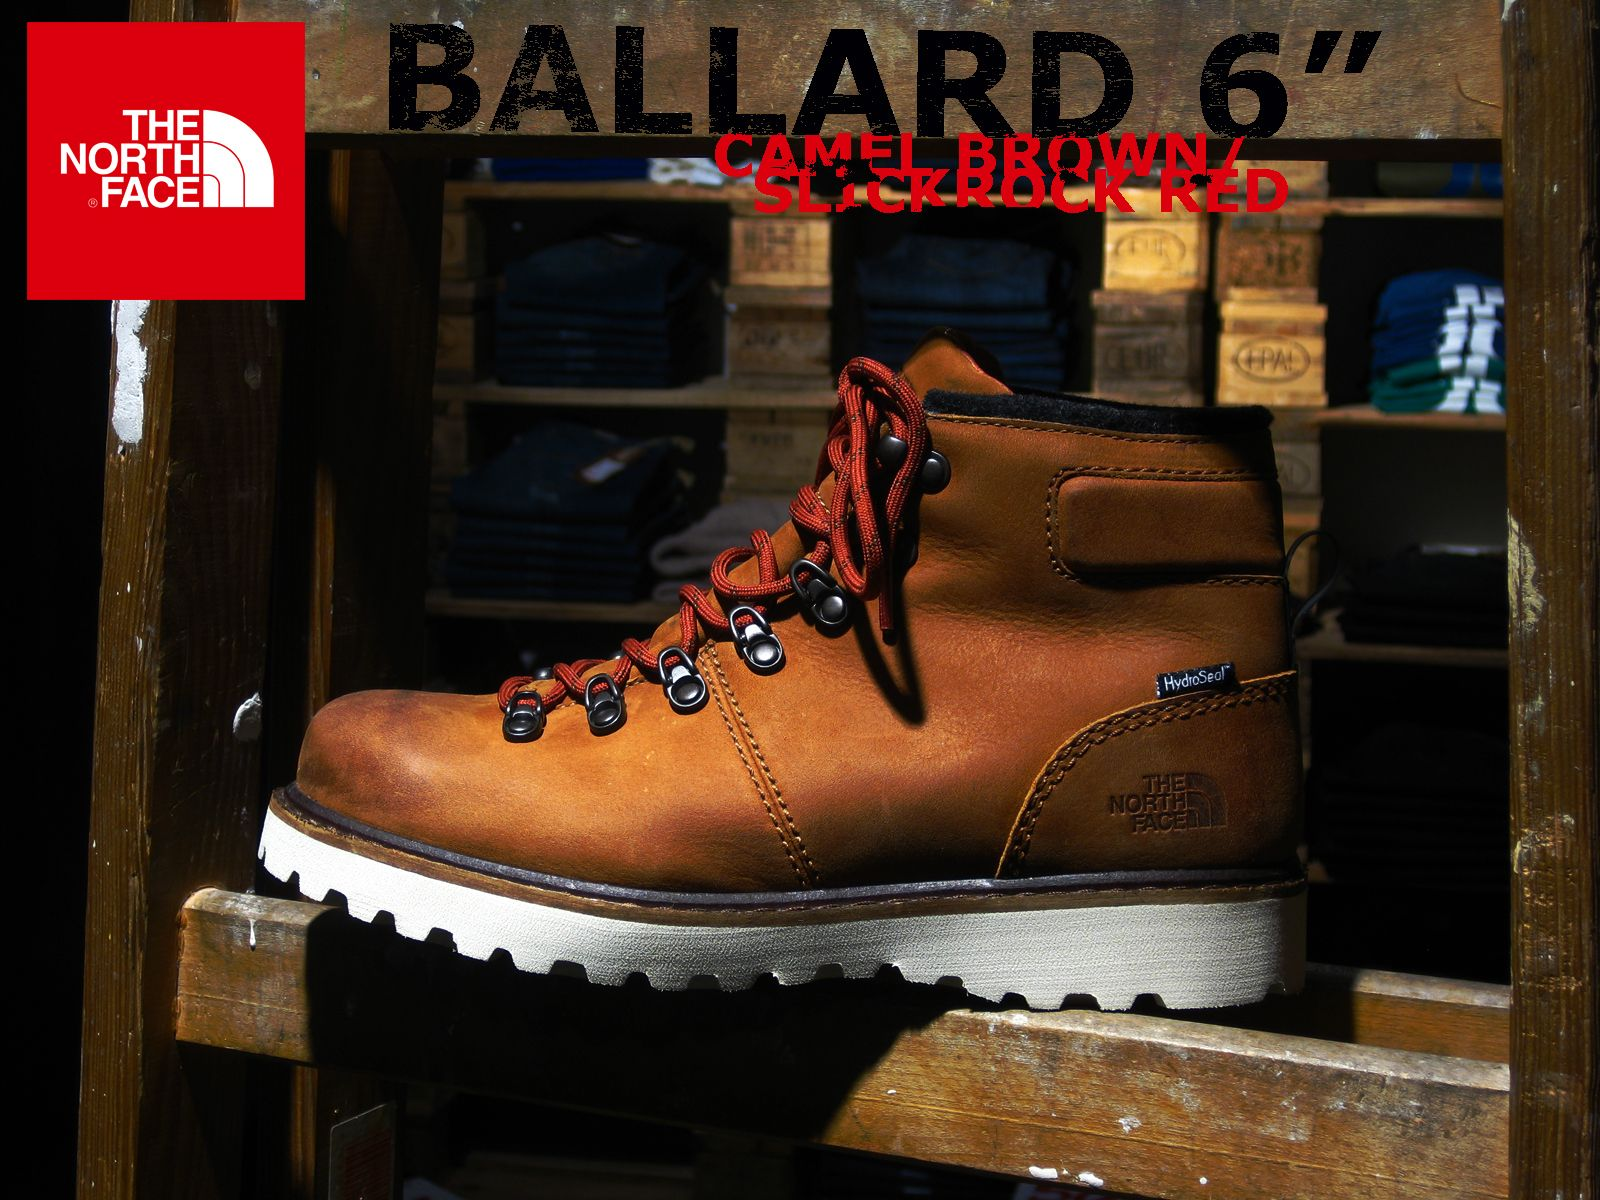 Bad Ass Display for a badass shoe: The #NorthFace Ballard 6 (Camel)